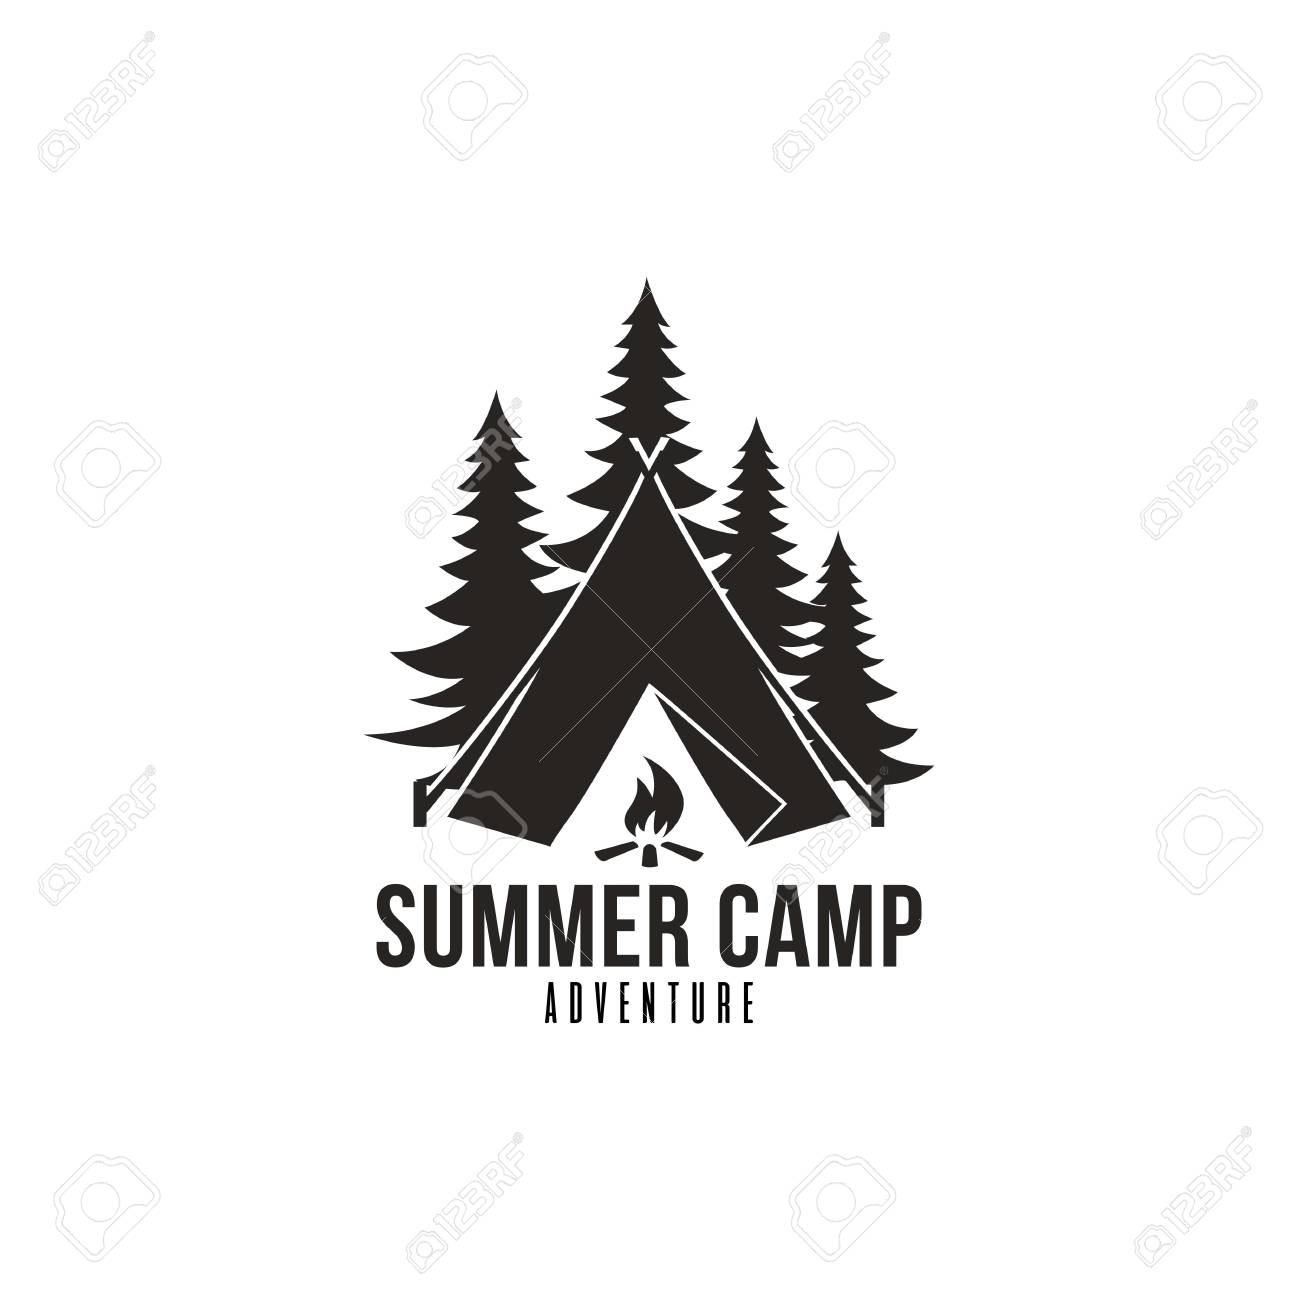 Forest Adventure Summer Camp Black And White Badge Vector Logo